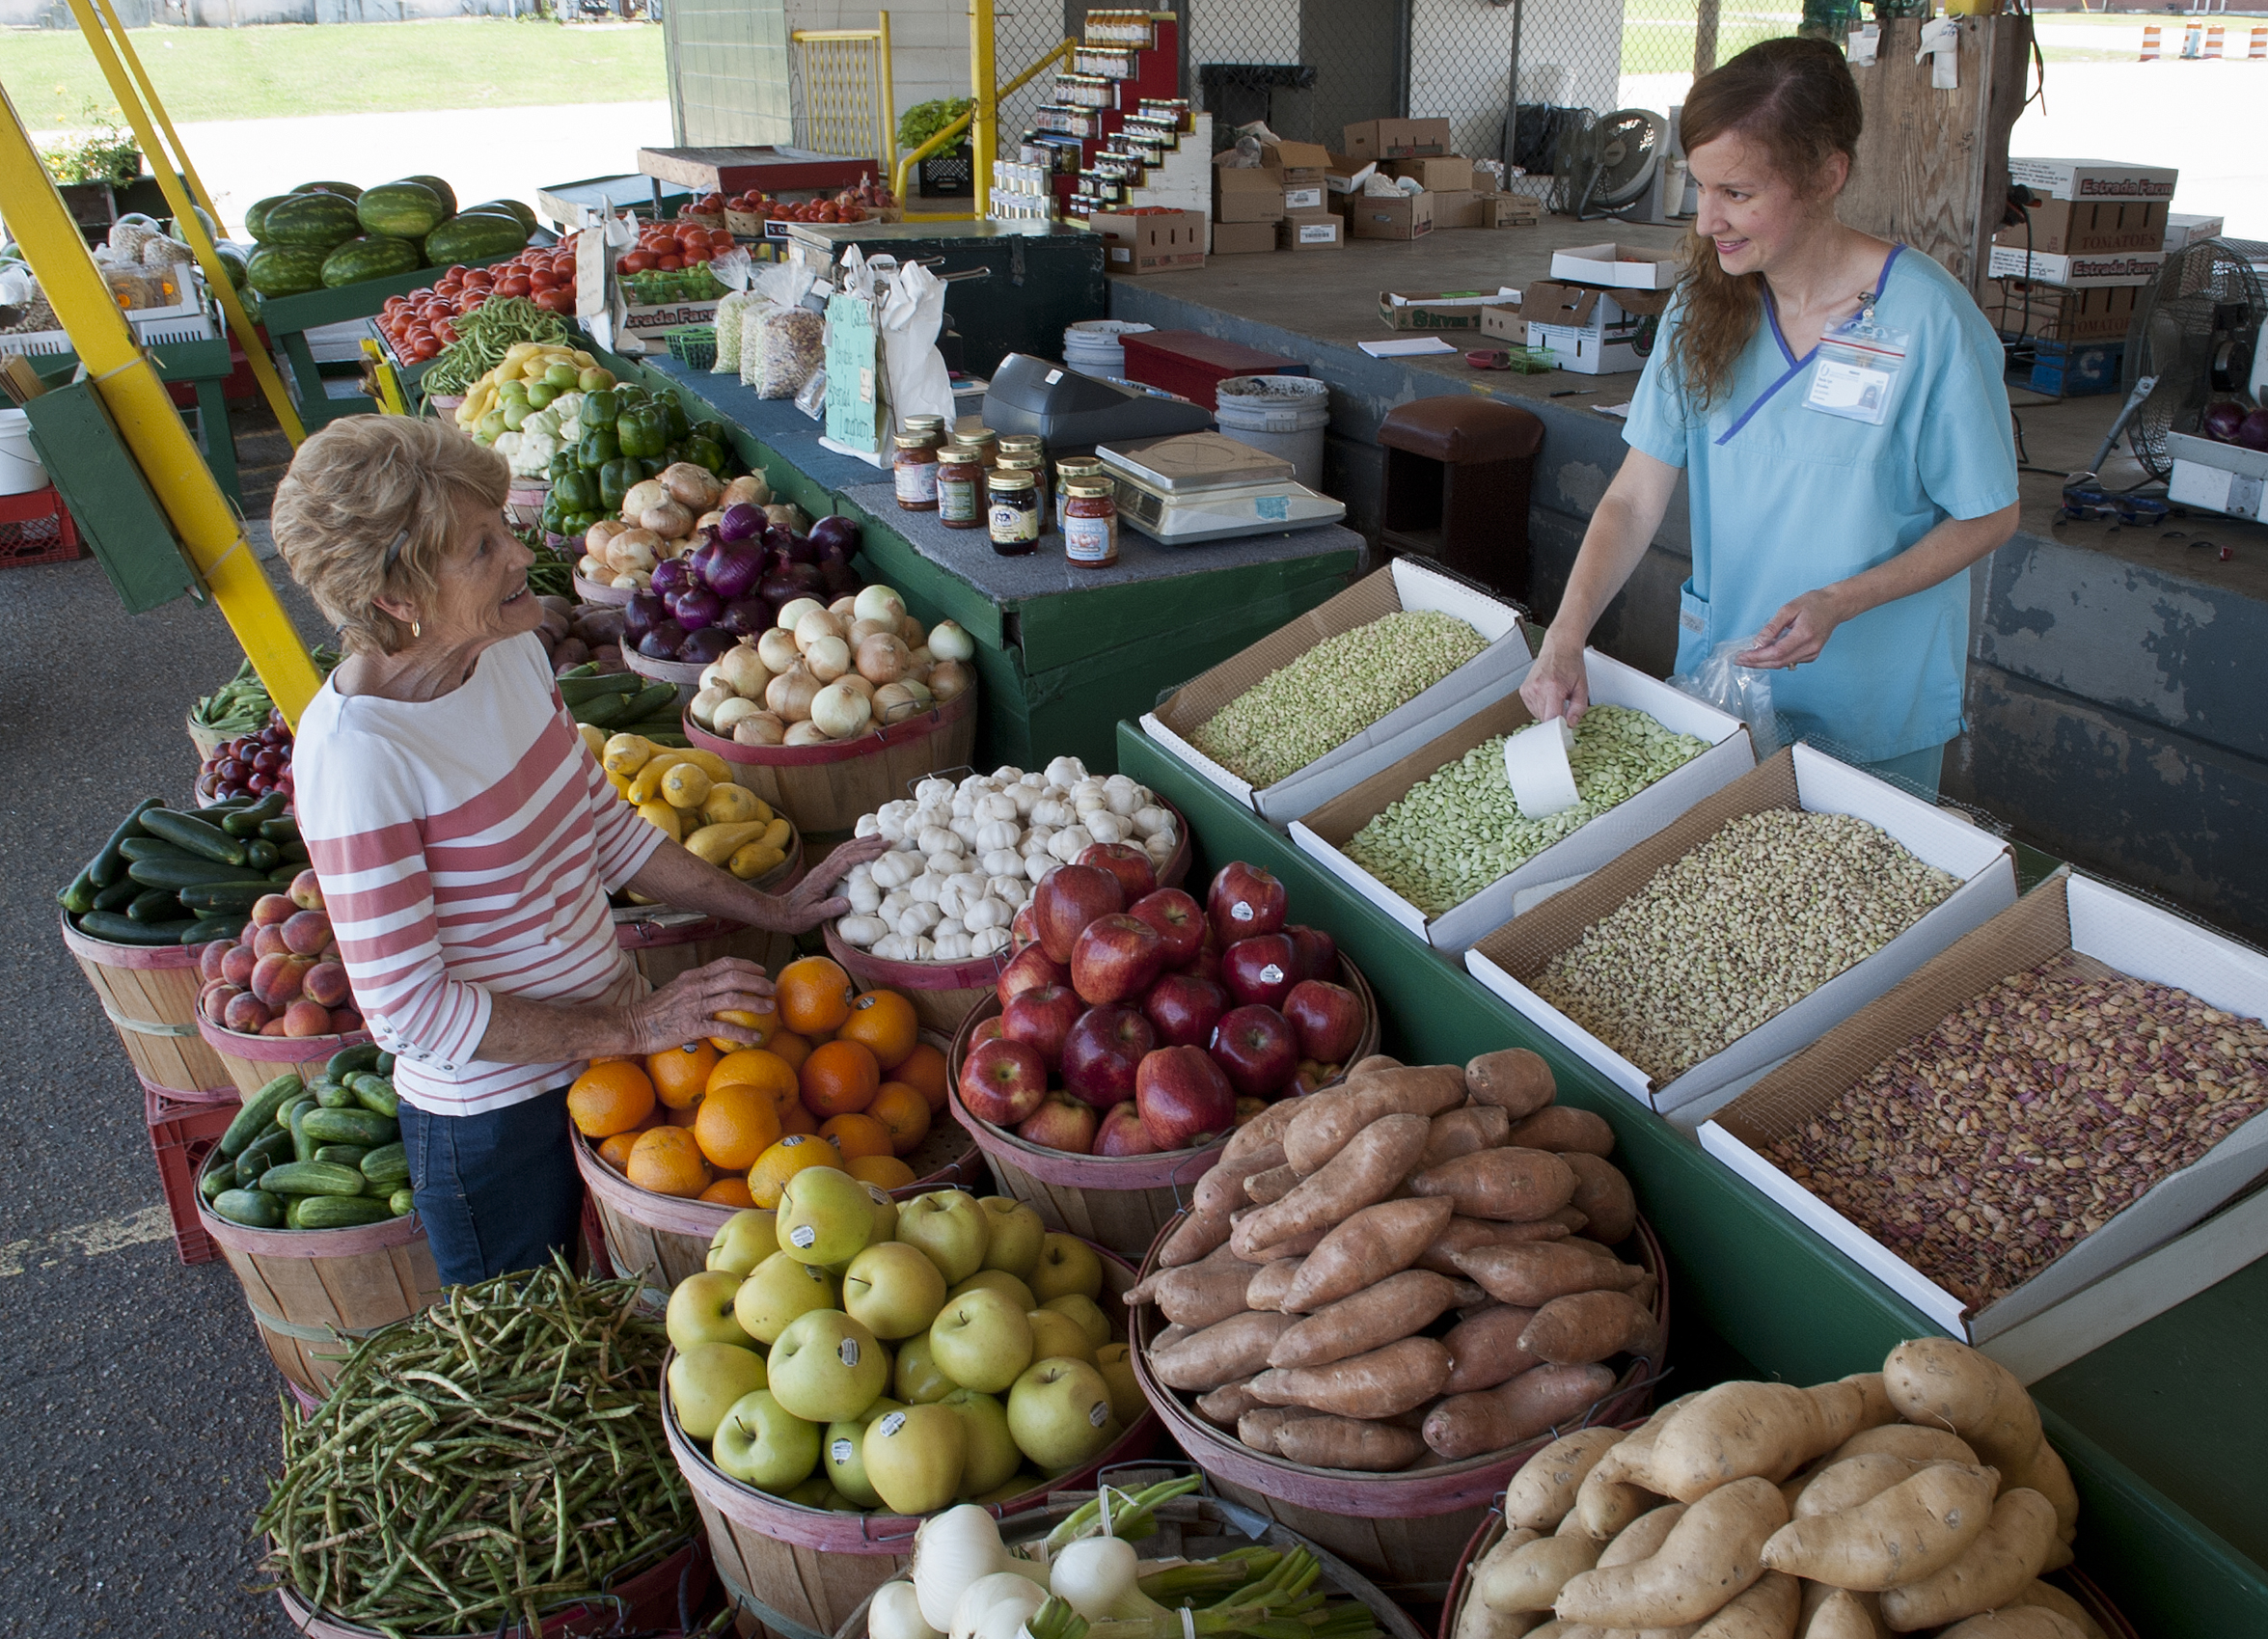 Veg out for health at farmer's markets, UMMC experts say